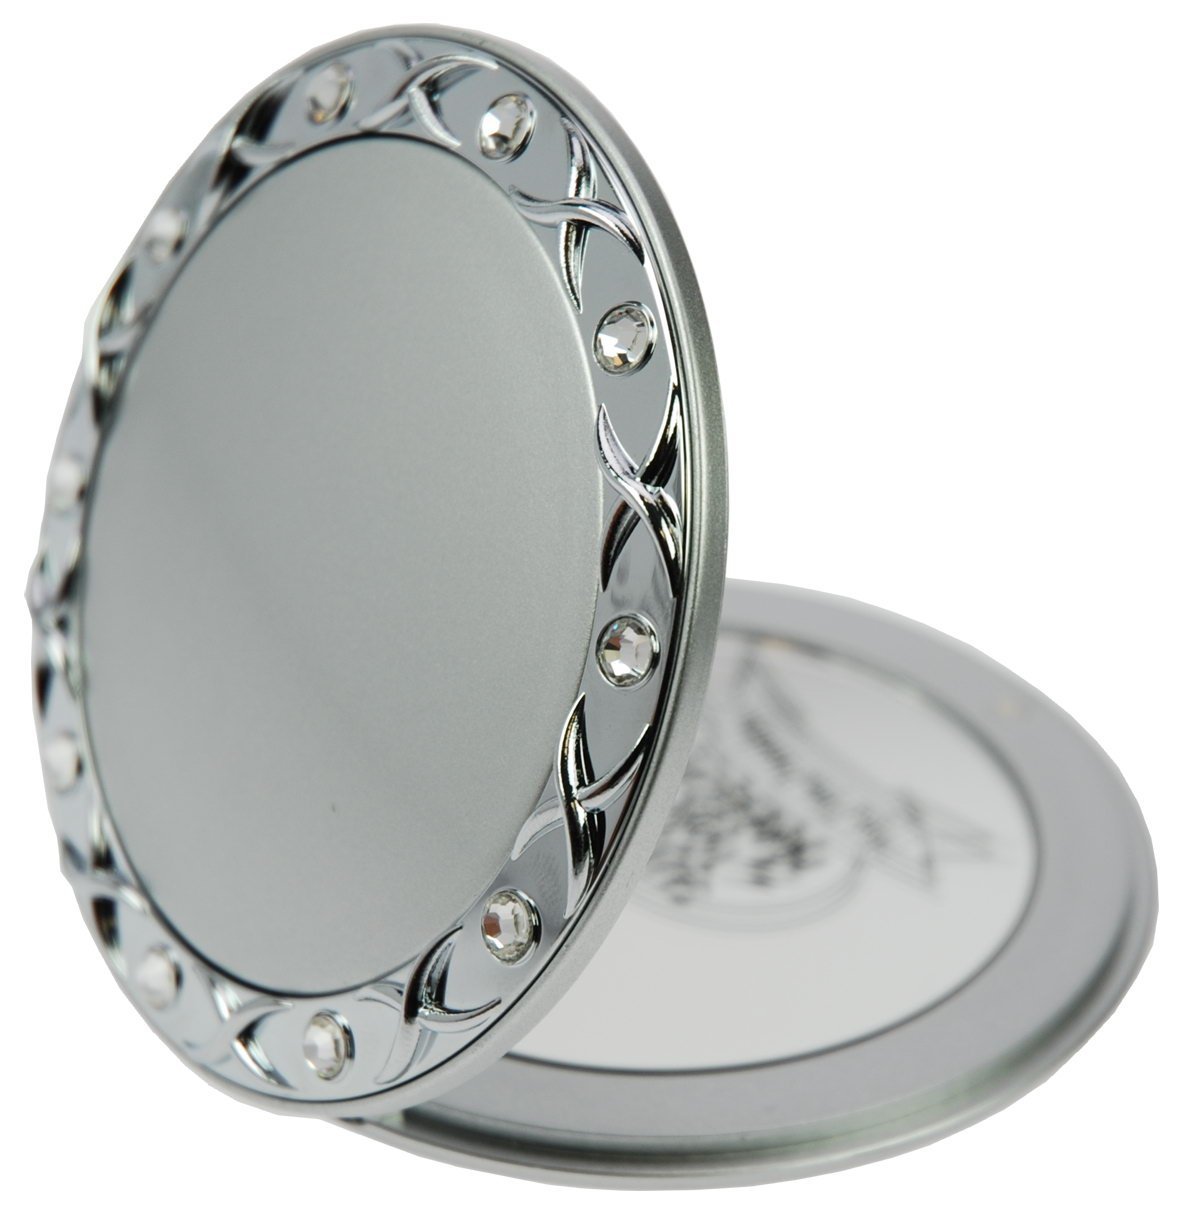 Fantasia Compact Mirror Round Silver 10 x Magnification Swarovski Elements 8.5 cm 44069